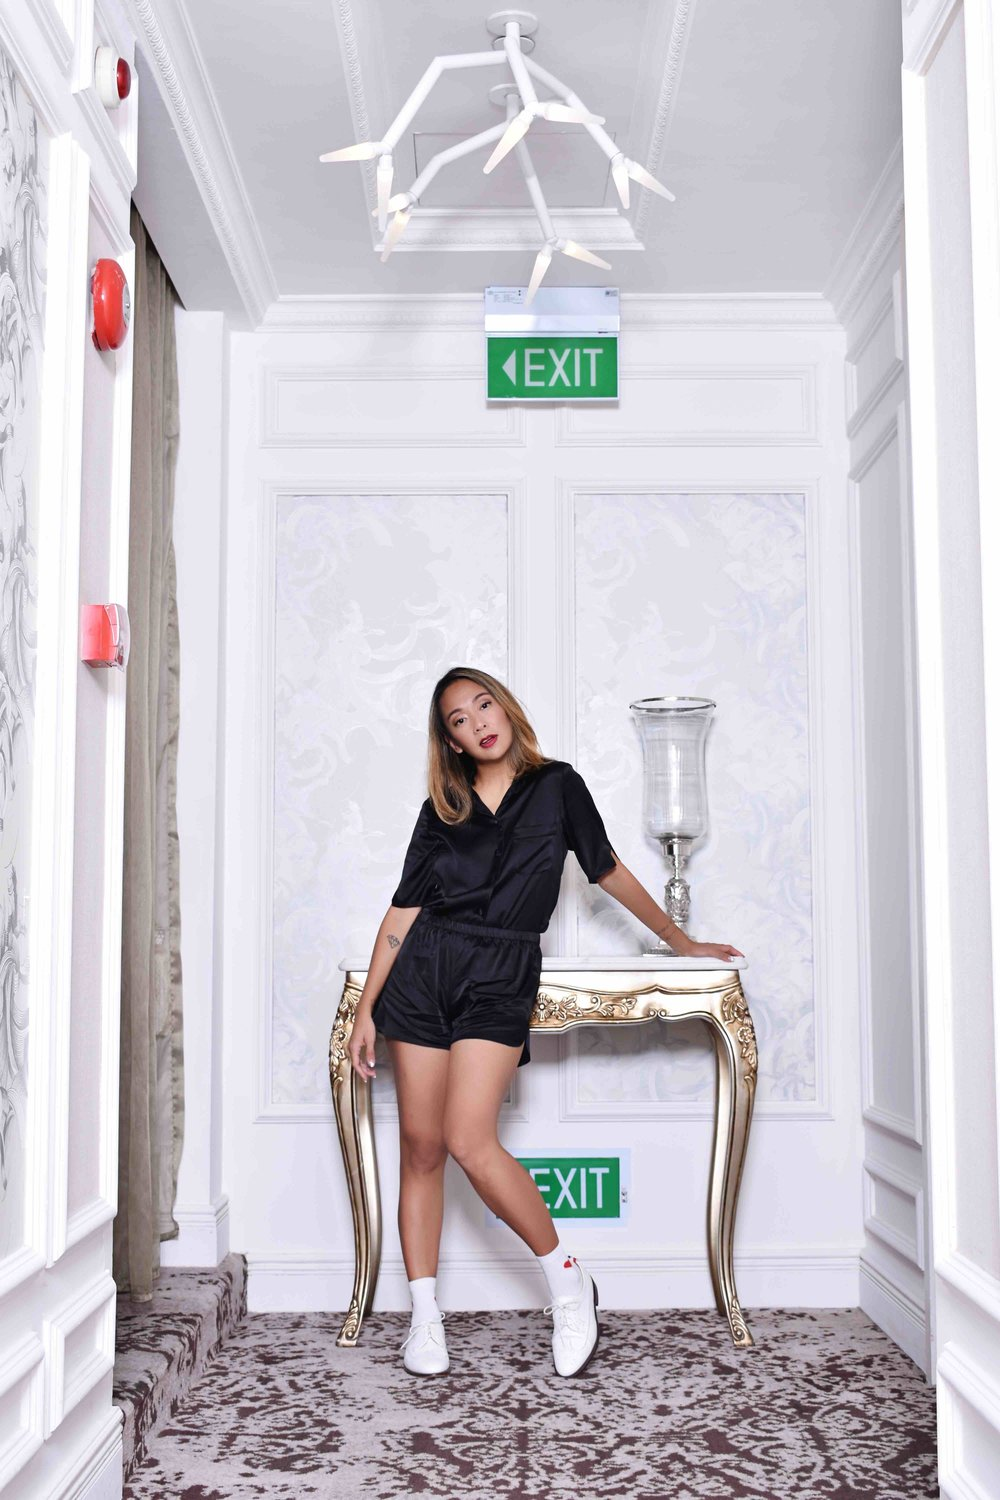 Charmaine wears the ELOISE Silk Jacket & FANG Silk Shorts in Black and her own socks and shoes